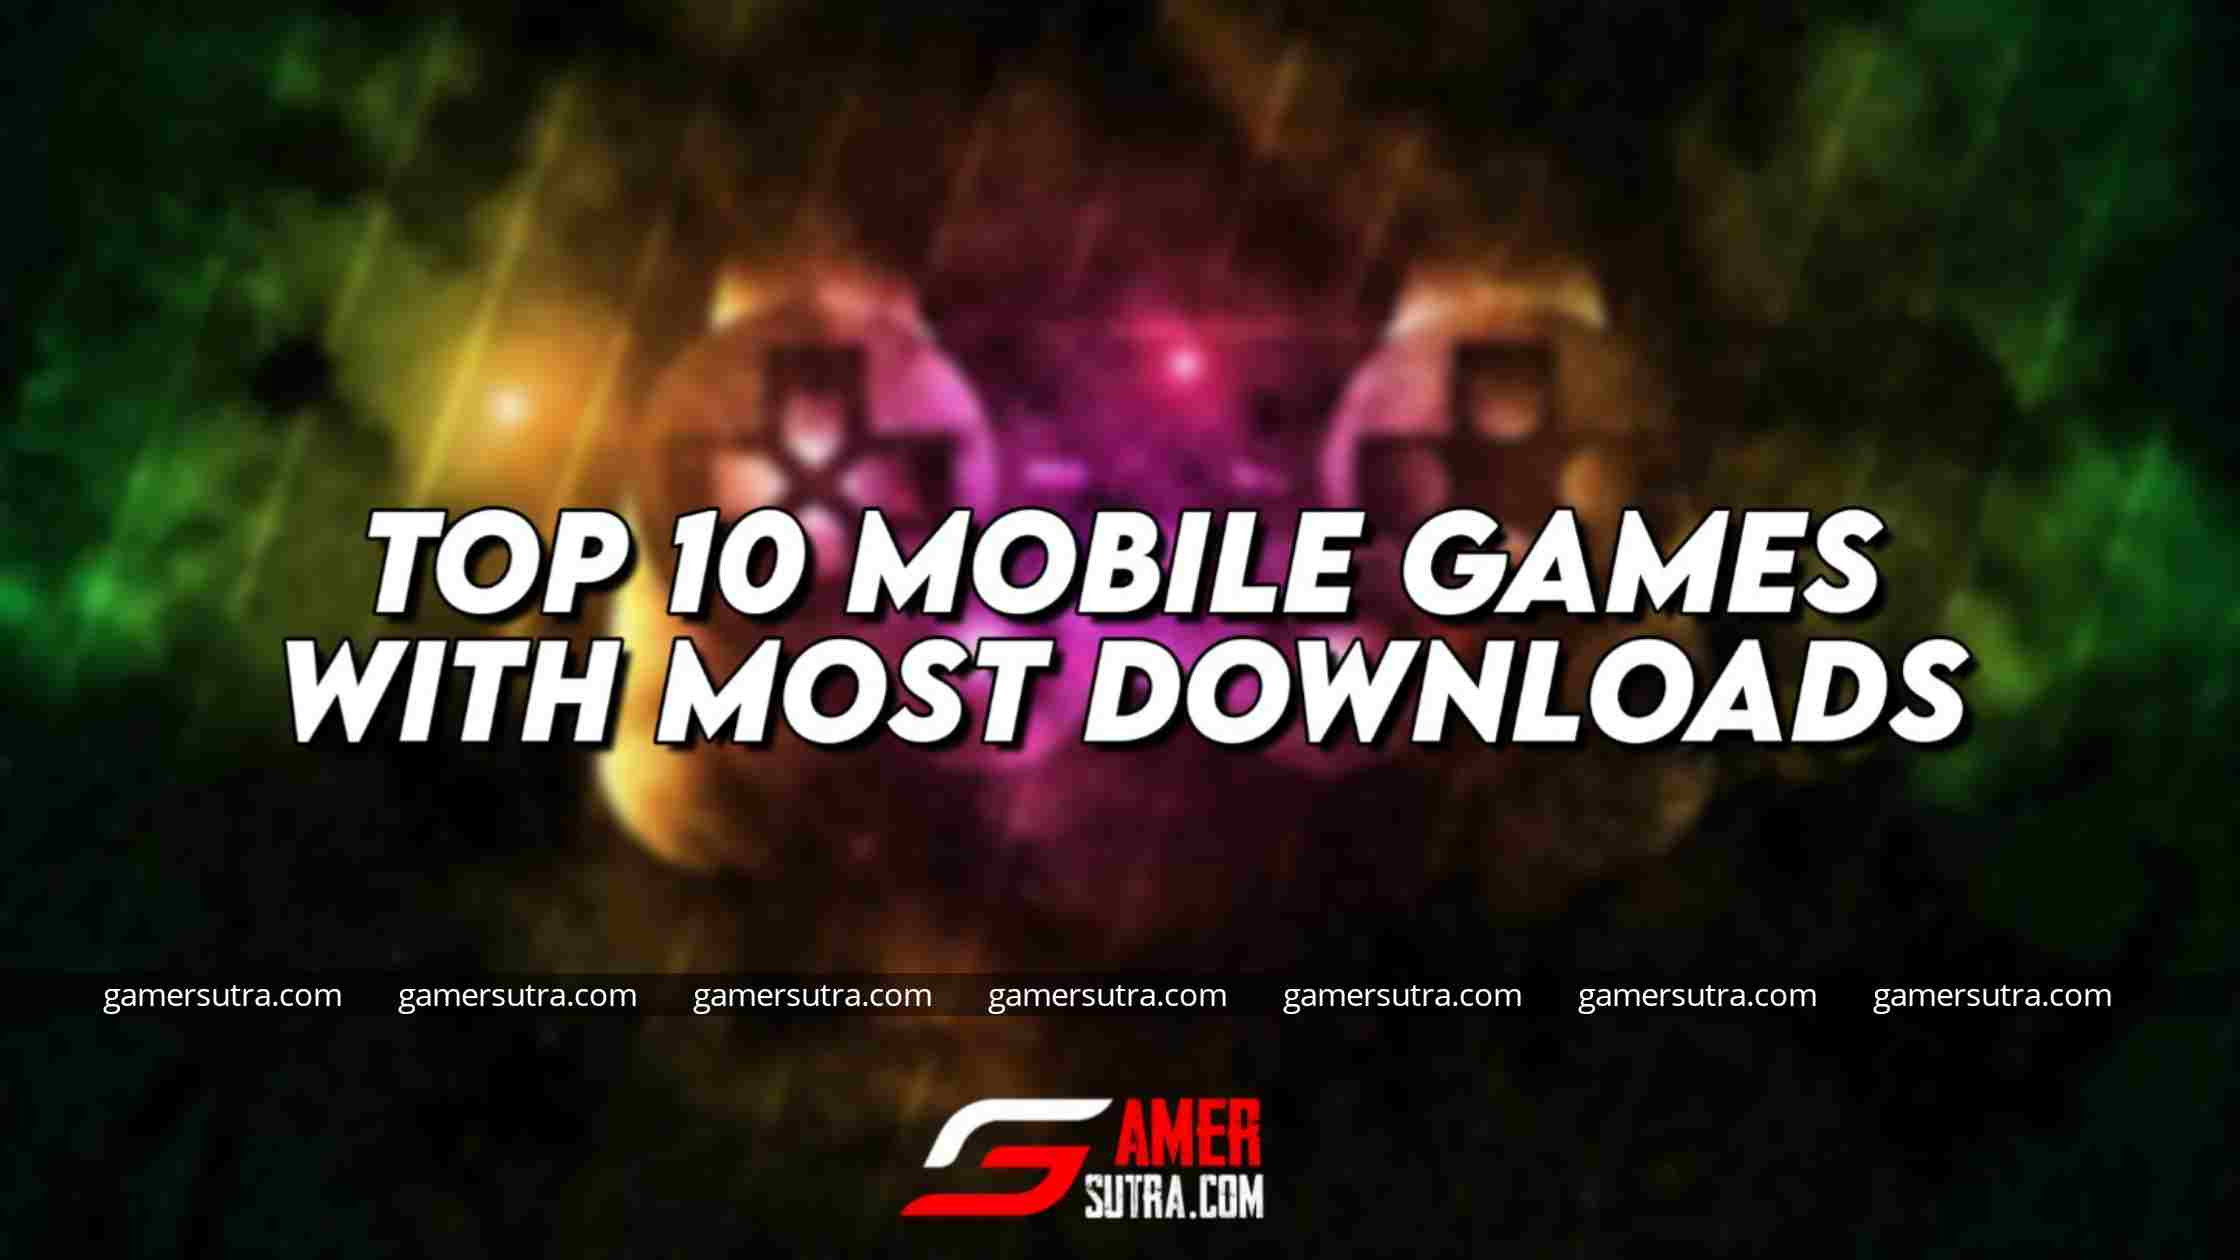 Top 10 Mobile Games with Most Downloads